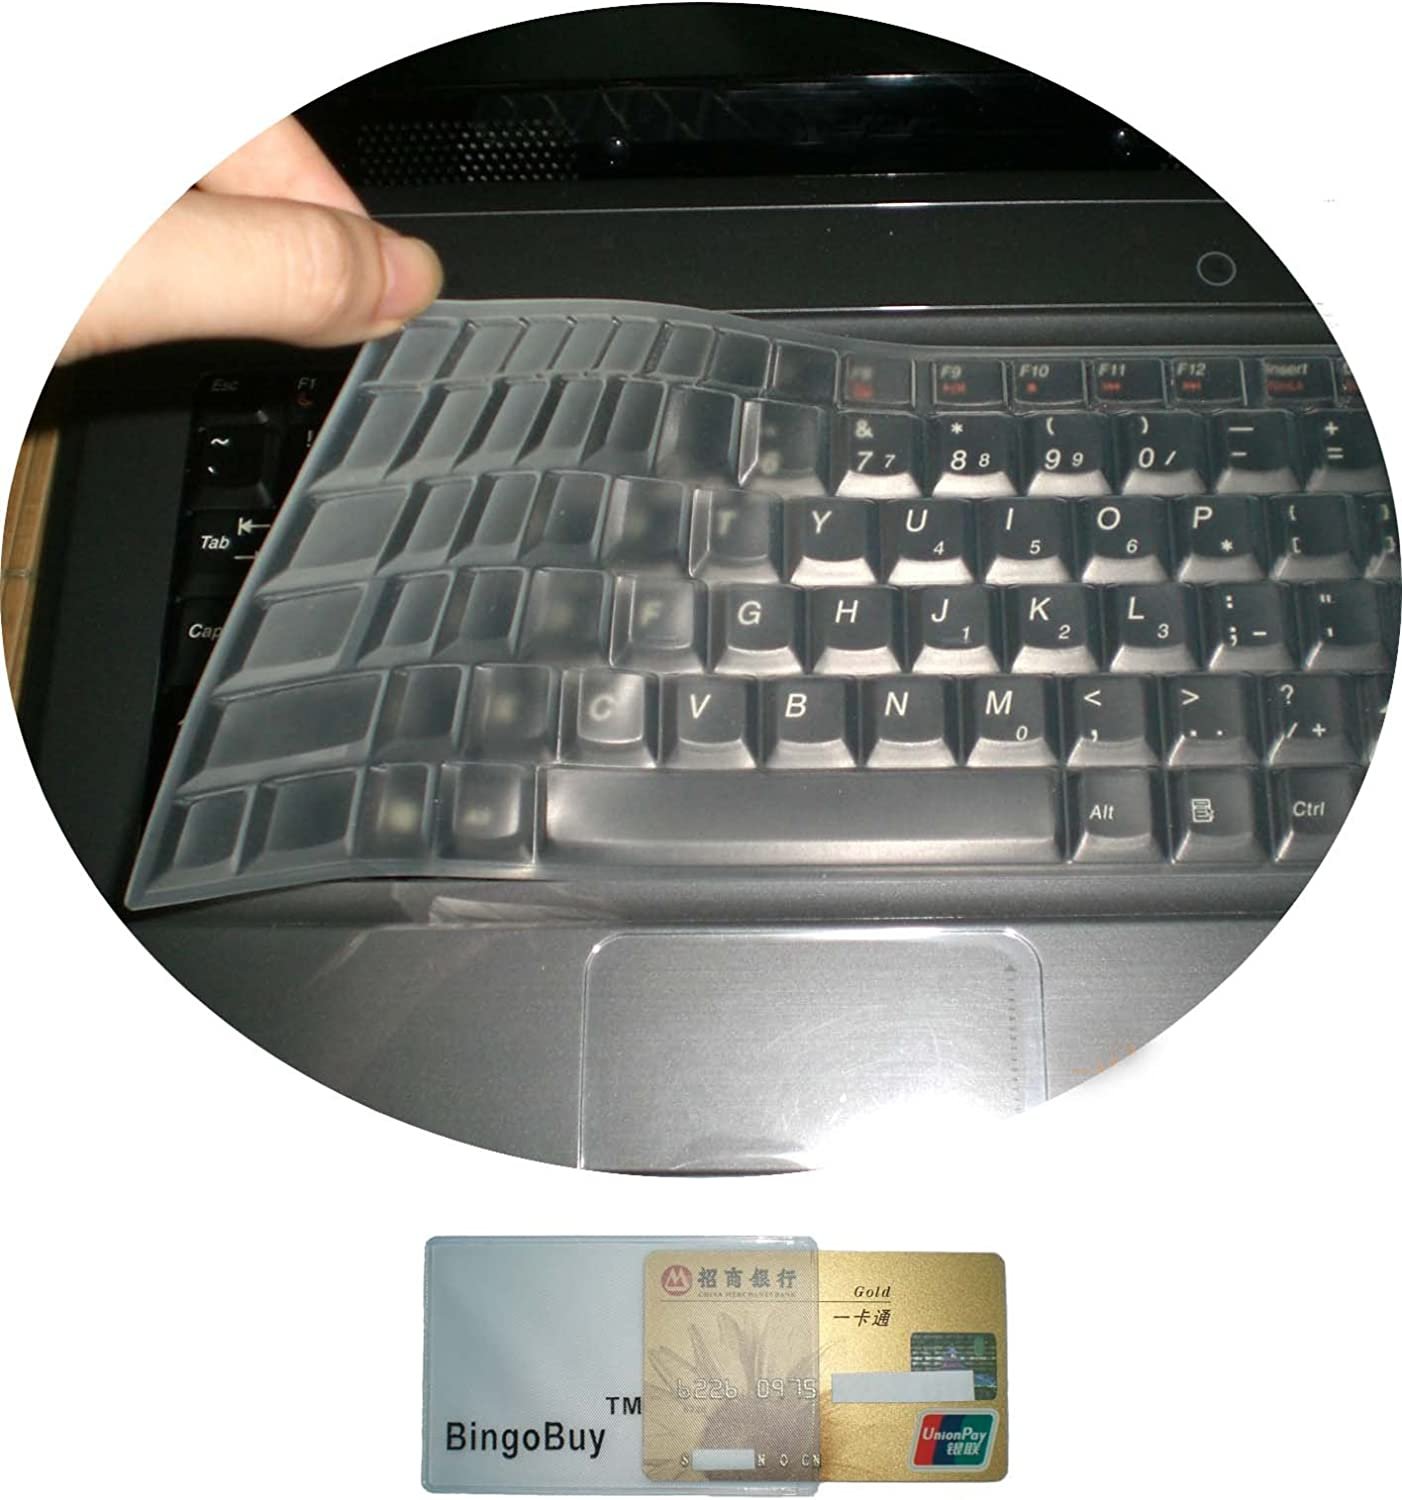 BingoBuy US layout Keyboard Protector Skin Cover for 15.6'' Dell Inspiron 15-3565 15-7559 15-7588 15-3552 15-5555 15-7567 15-7577 15-5570 17-5770 17-5755 17-5759 with Card Case (clear)